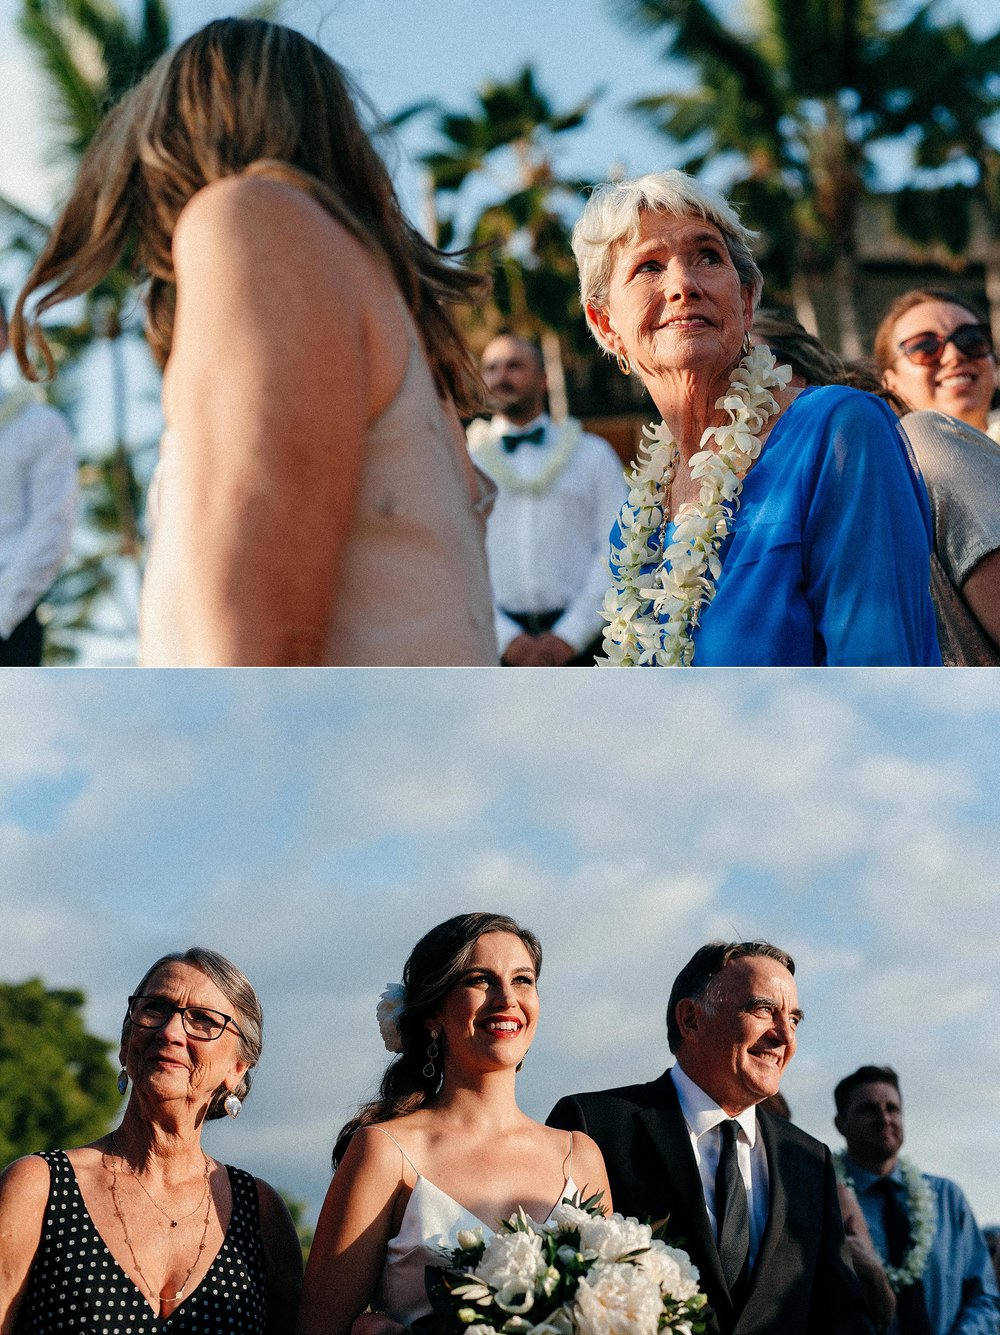 Kona-Big-Island-Hawaii-New-Years-Eve-Wedding-with-Ceremony-at-Living-Stones-Church-and-Reception-at-Daylight-Mind-Coffee_0011.jpg